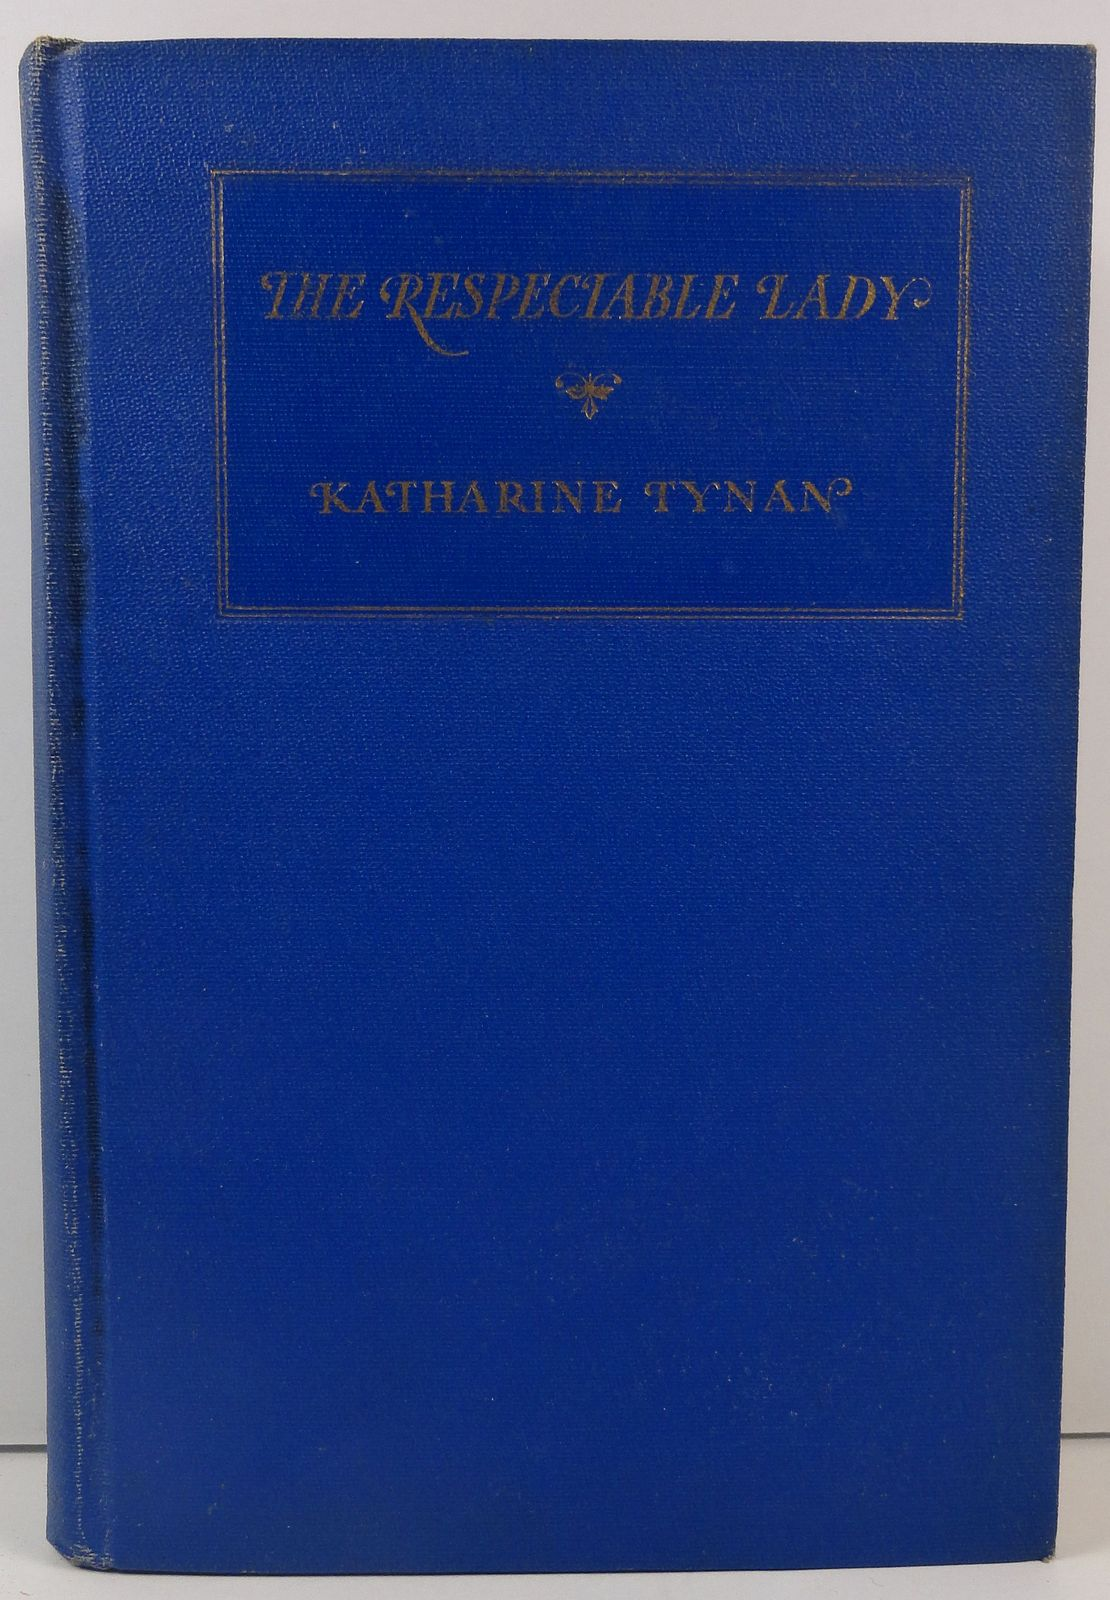 The Respectable Lady by Katharine Tynan 1928 D. Appleton